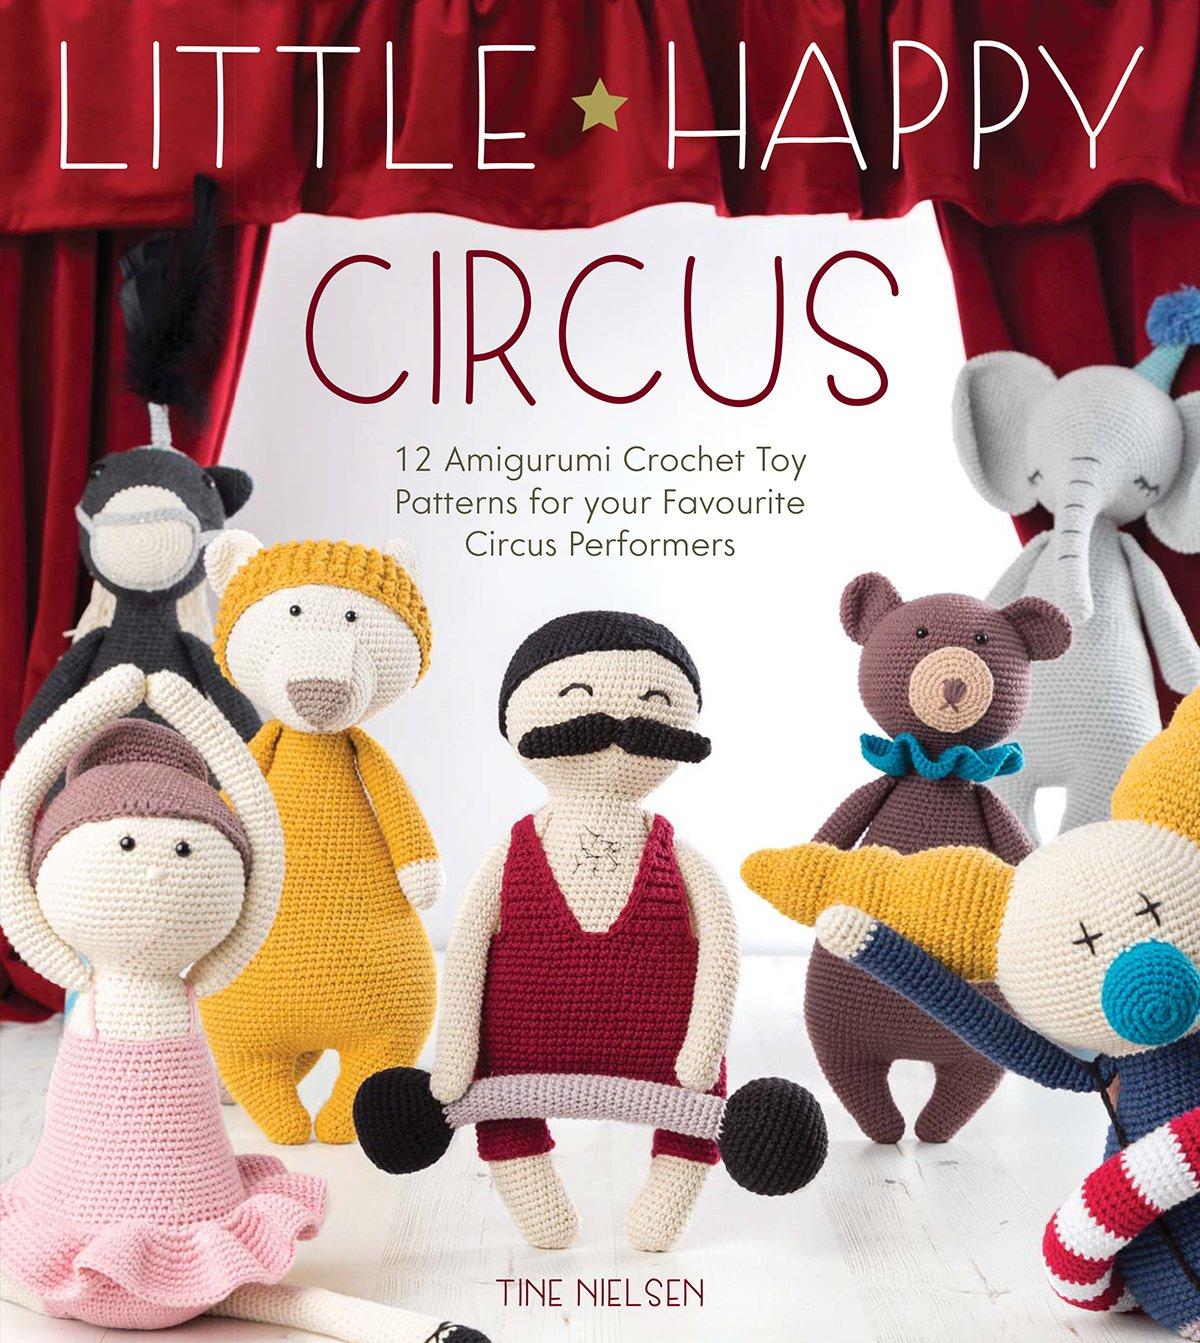 Little Happy Circus 12 Amigurumi Crochet Toy Patterns For Your